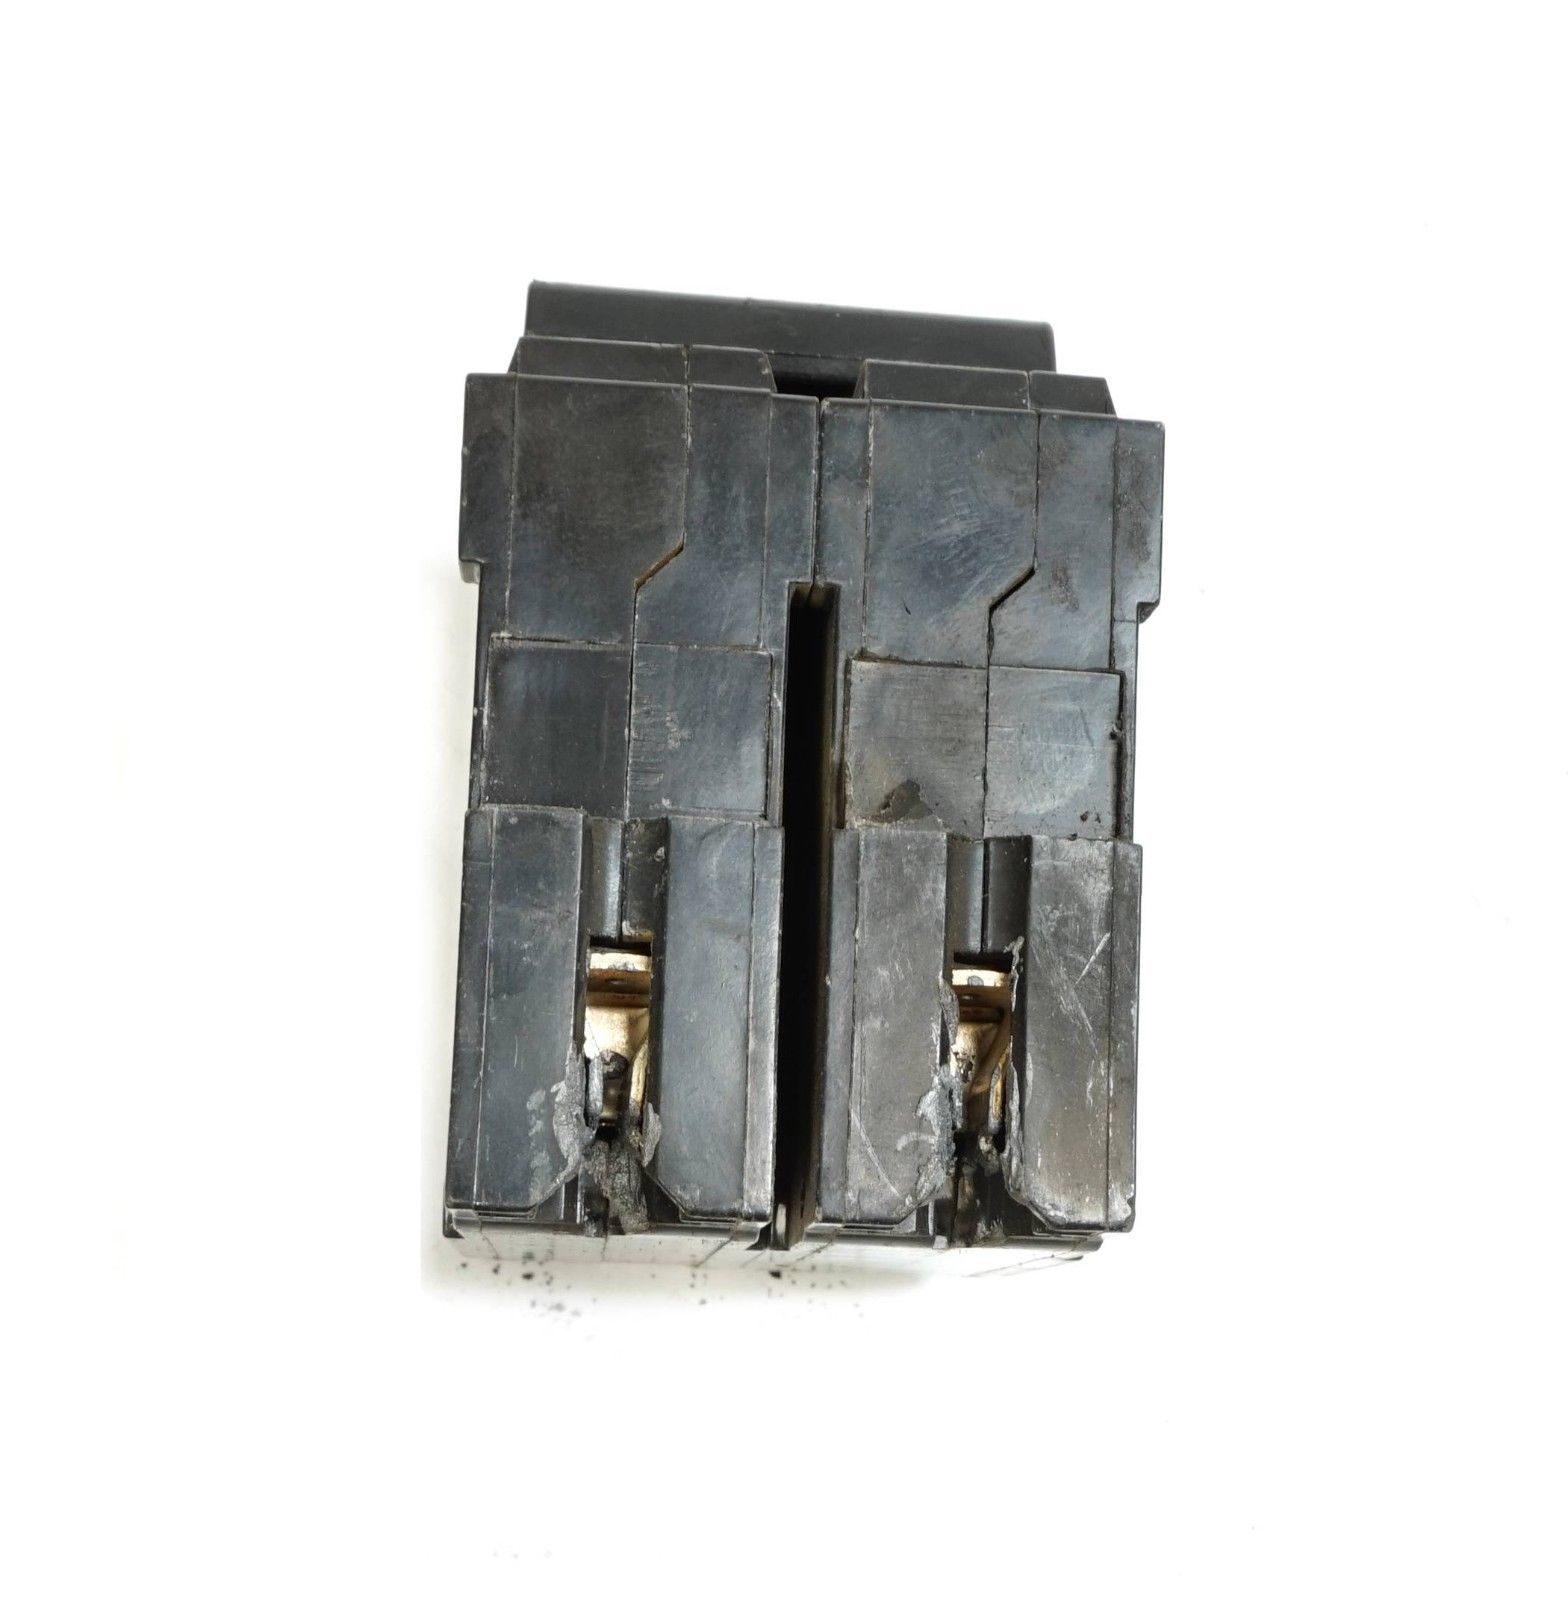 Ge General Electric Thql21100 Circuit And 39 Similar Items Square D Qob115 Bolt On Breaker 1pole 120vac 15 Amp 2 Pole 100 120 240vac